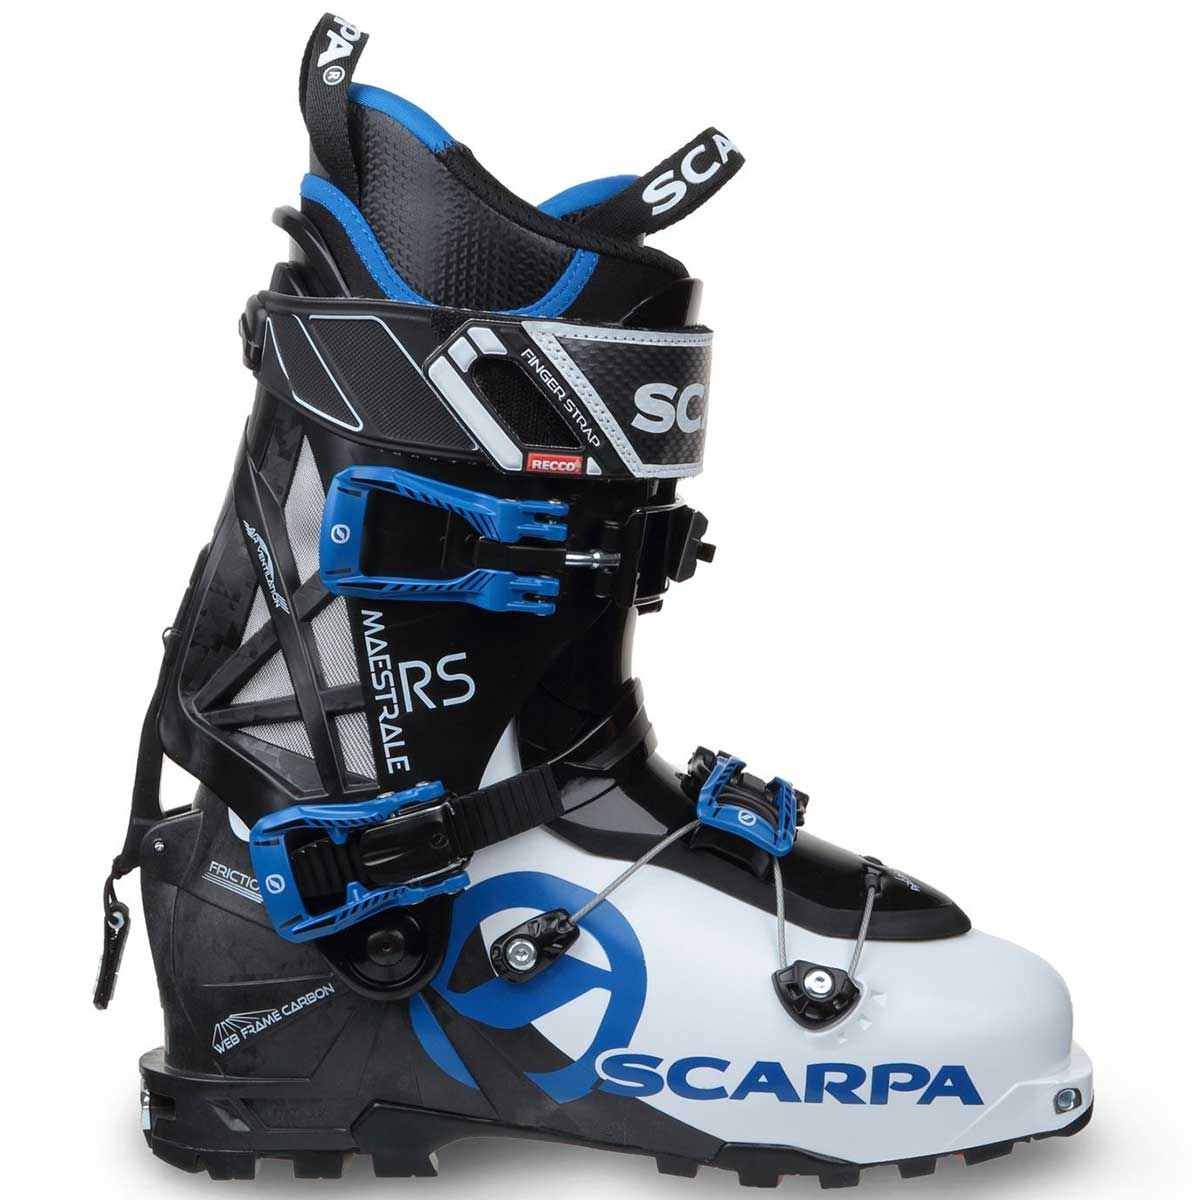 Scarpa Maestrale RS men's alpine touring ski boot in white and black and blue